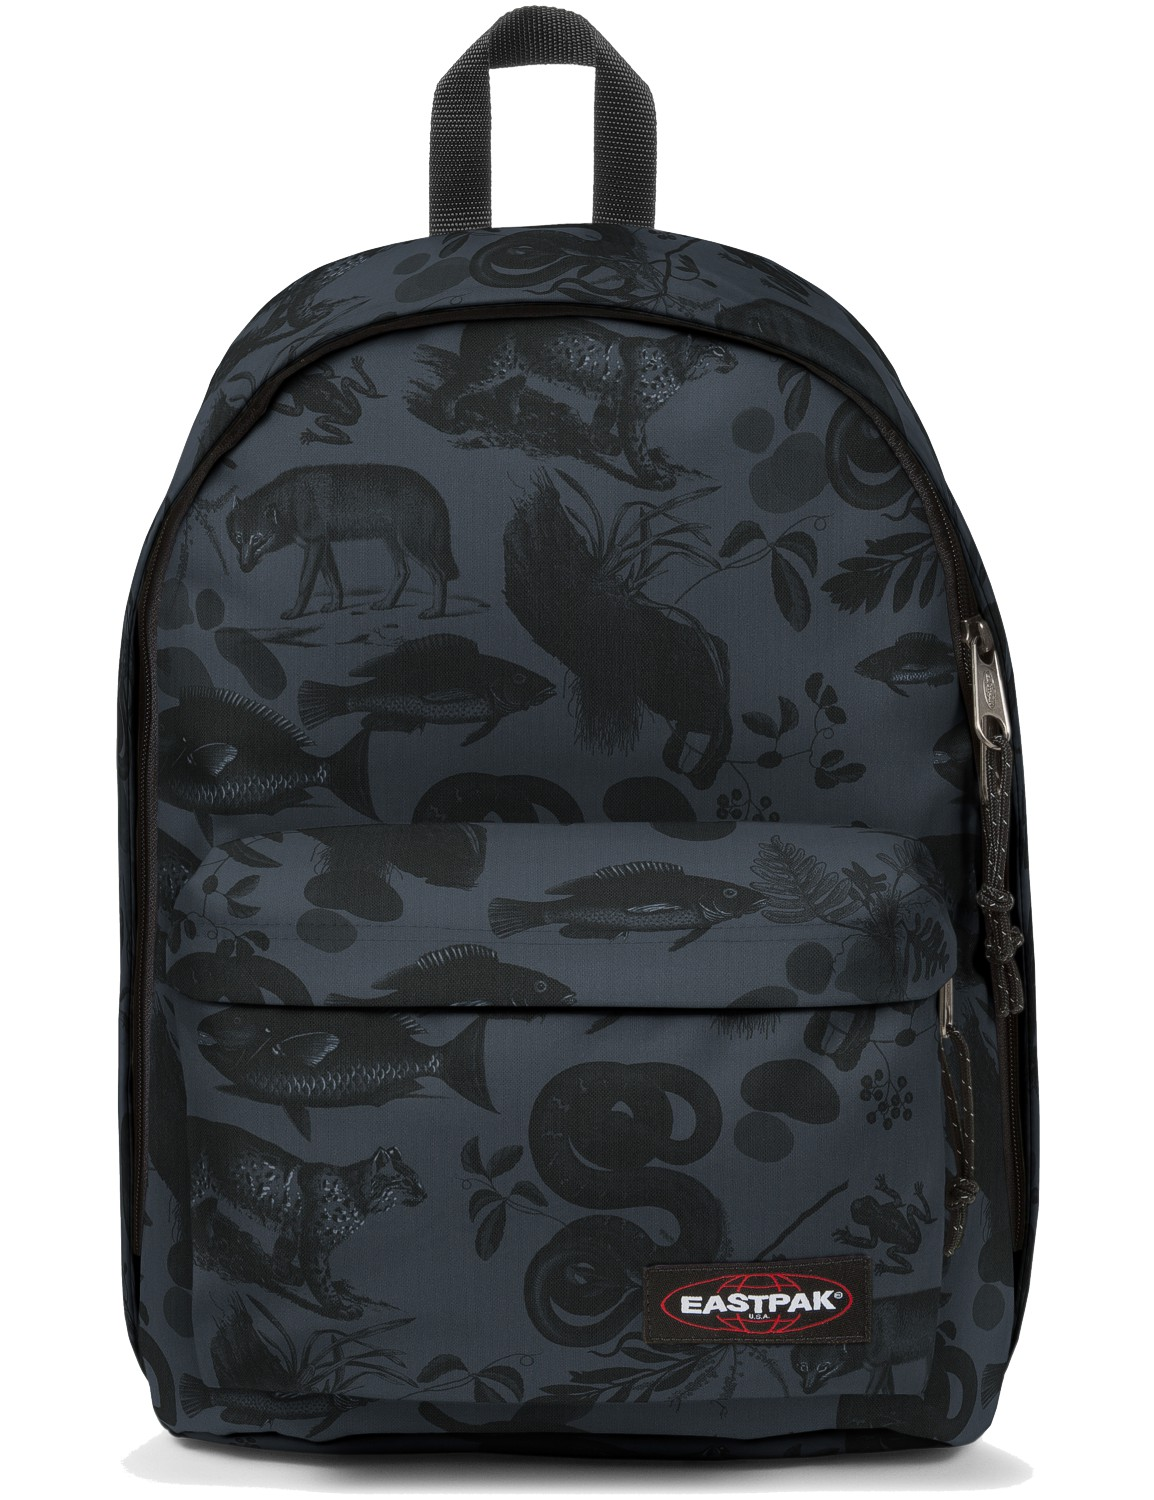 Eastpak Rucksack »Out of Office« mit Laptopfach Bozoo Grey Dschungel Print